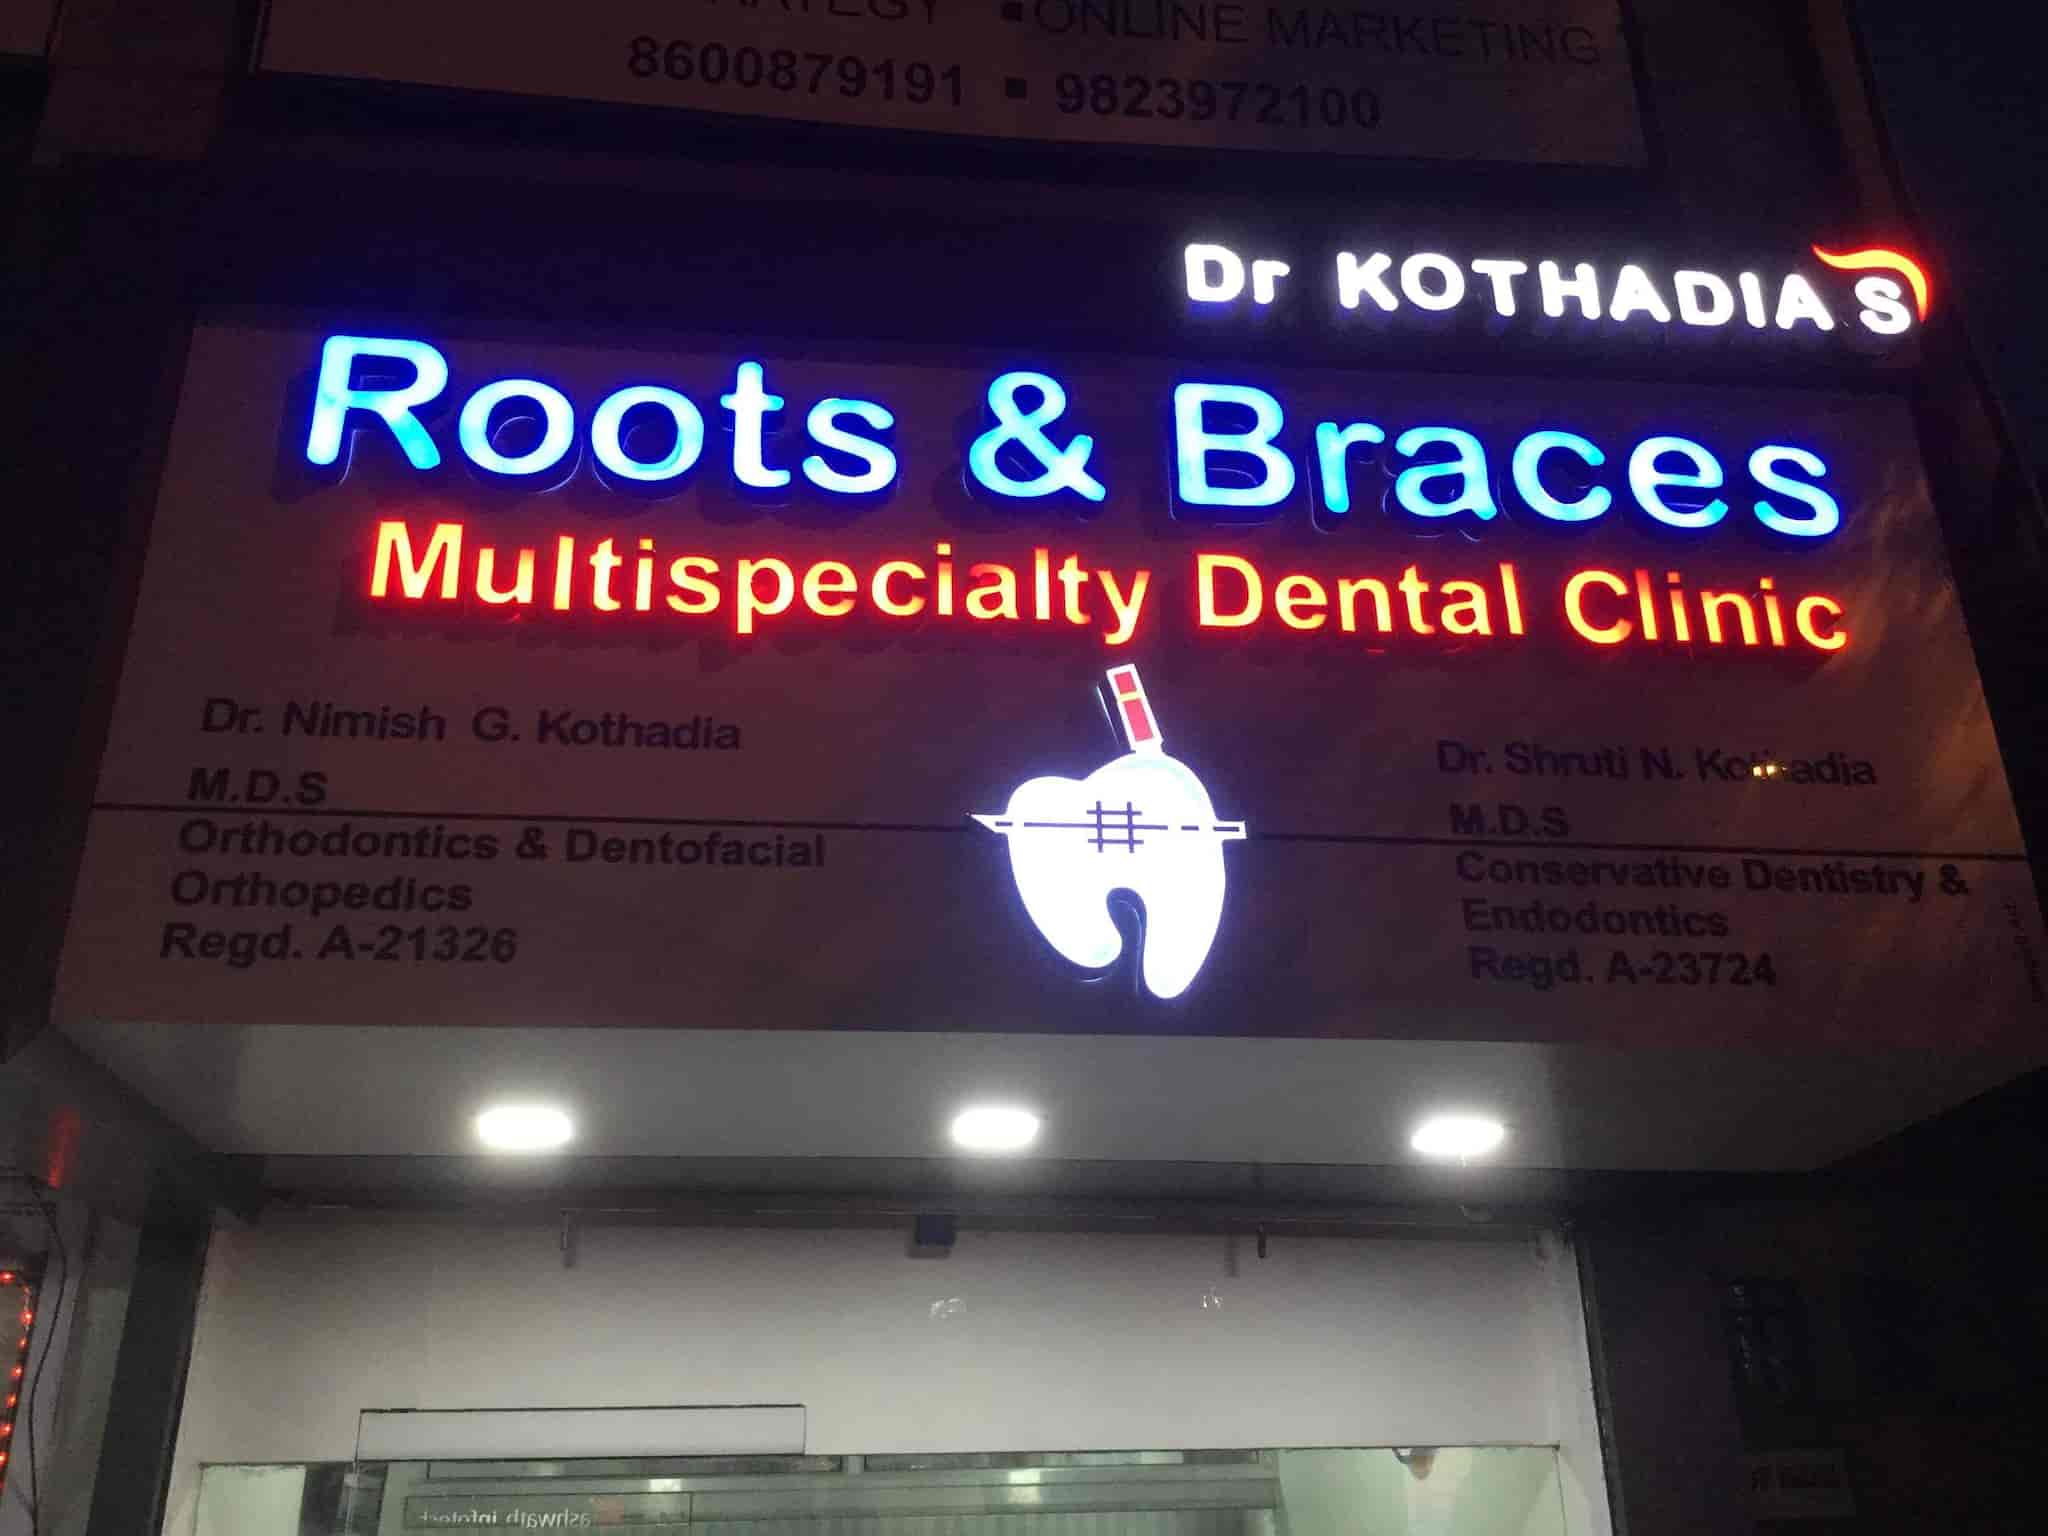 Dr. Kothadia Roots & Braces Multispecialty Dental Clinic ...